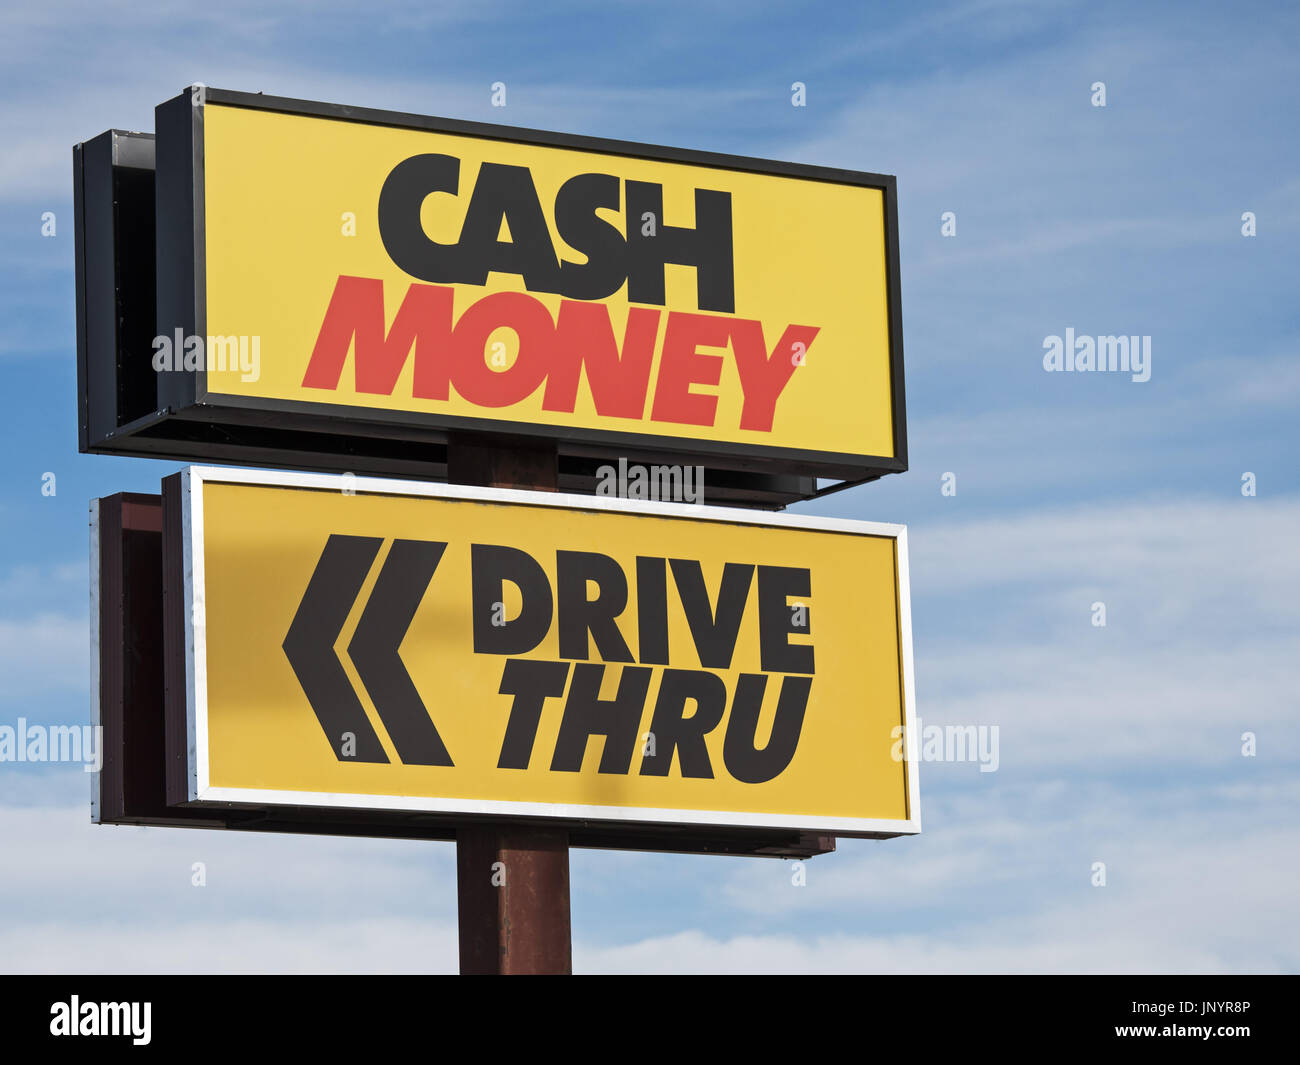 Chase payday advance loan picture 6